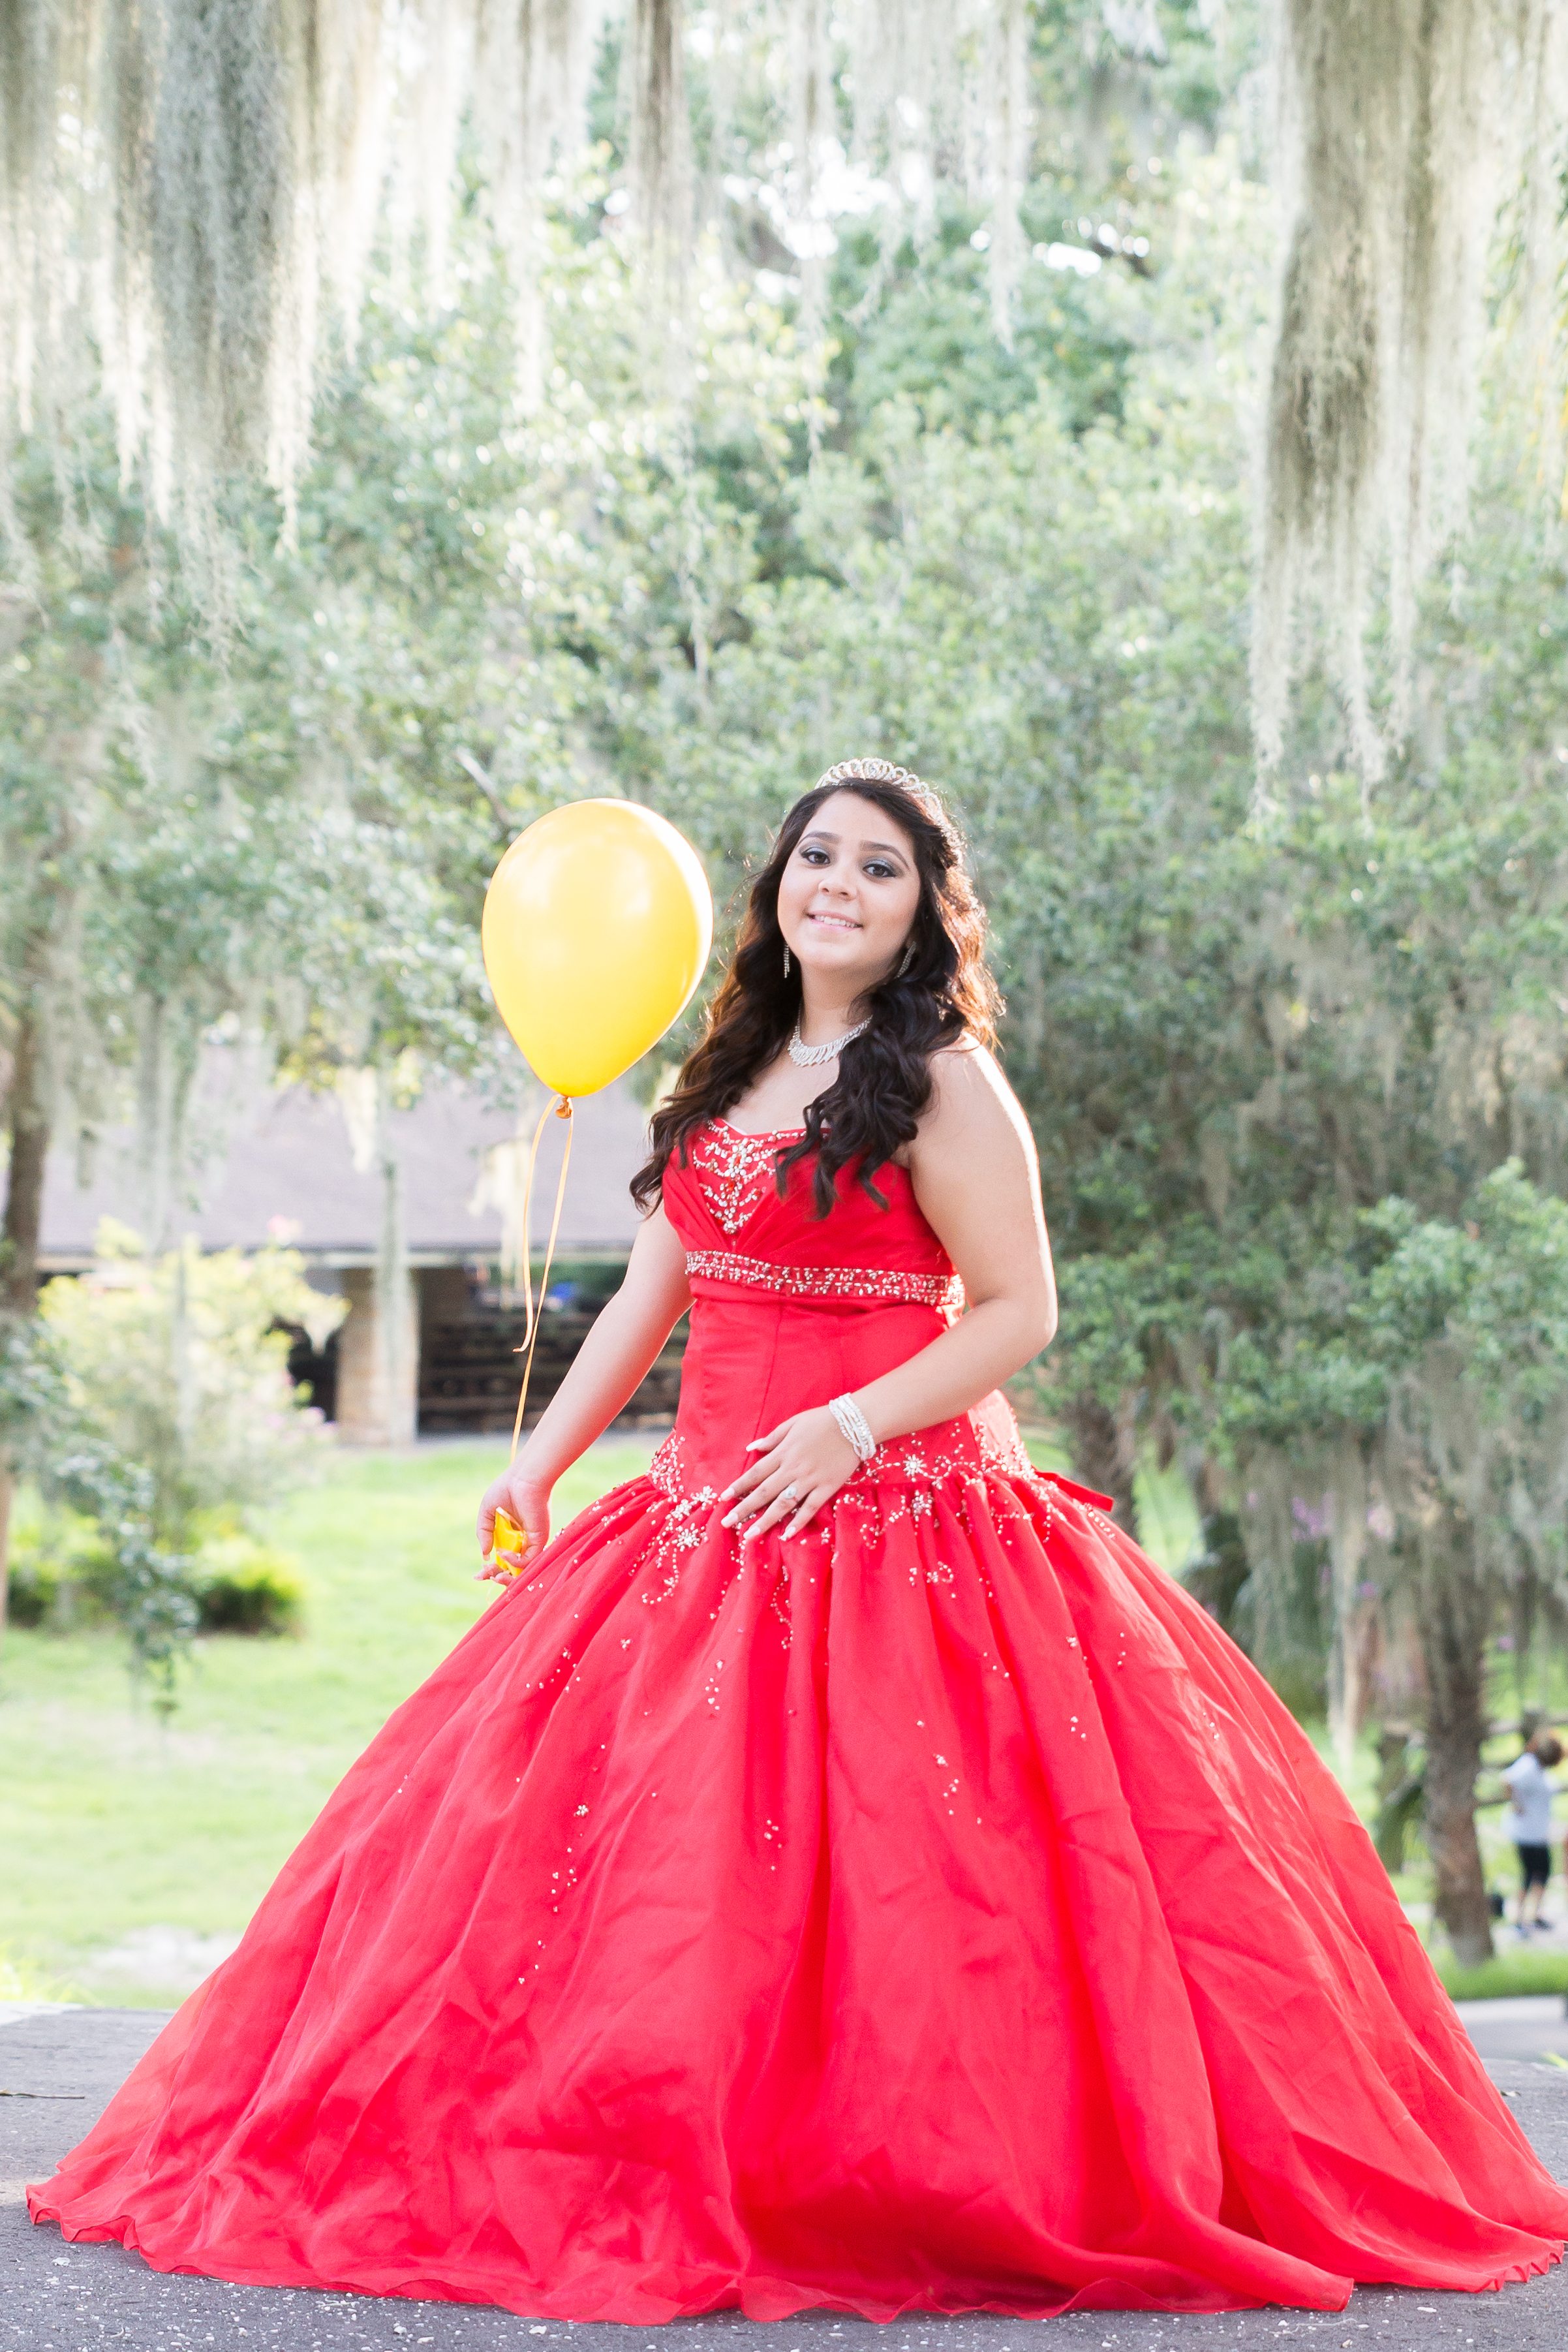 Tampa quinceanera session. tampa phillips park XV, quinceanera photographer